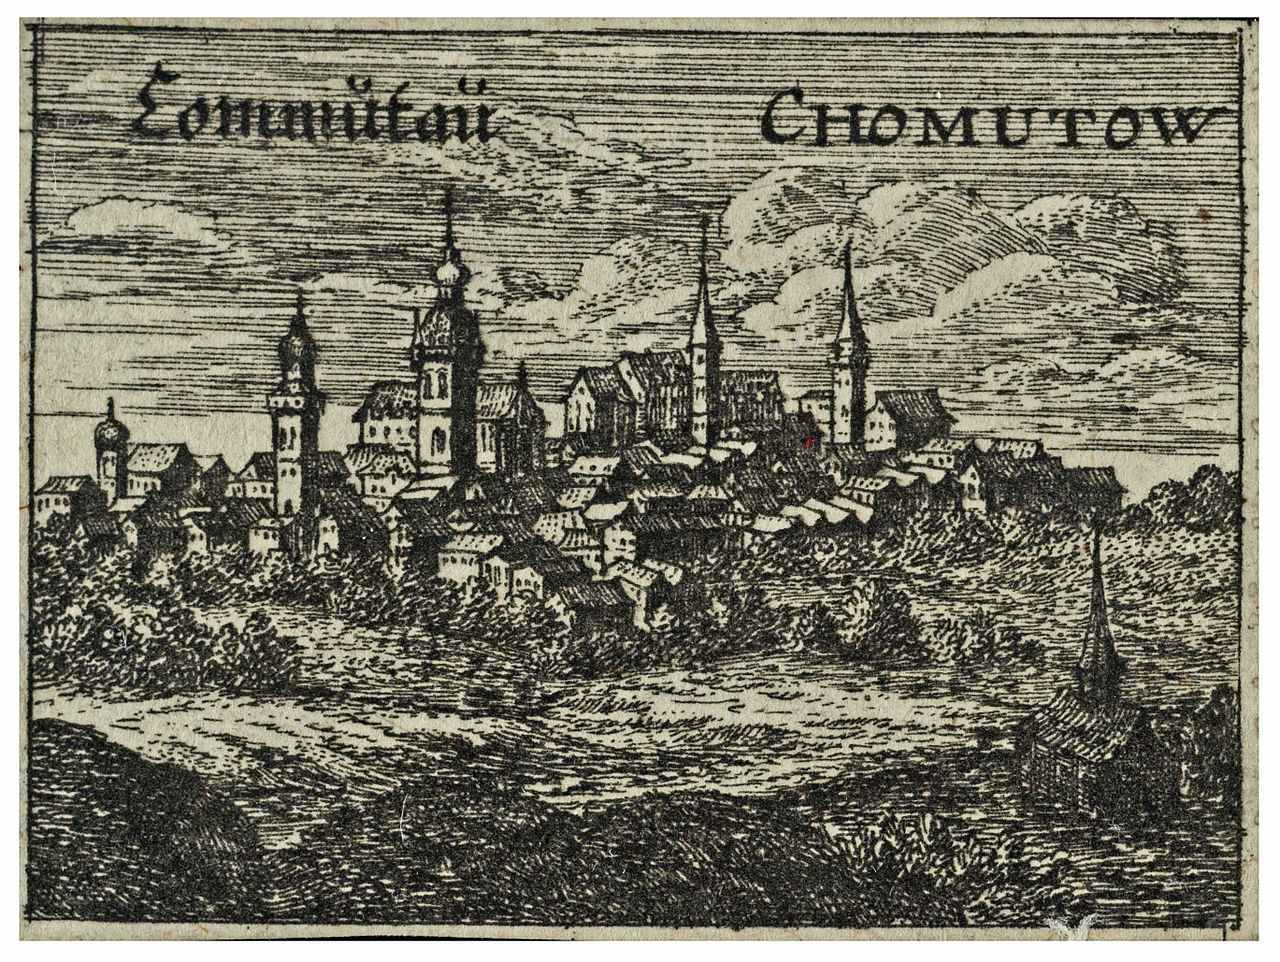 Wenceslas Hollar - Bohemian views 2.jpg